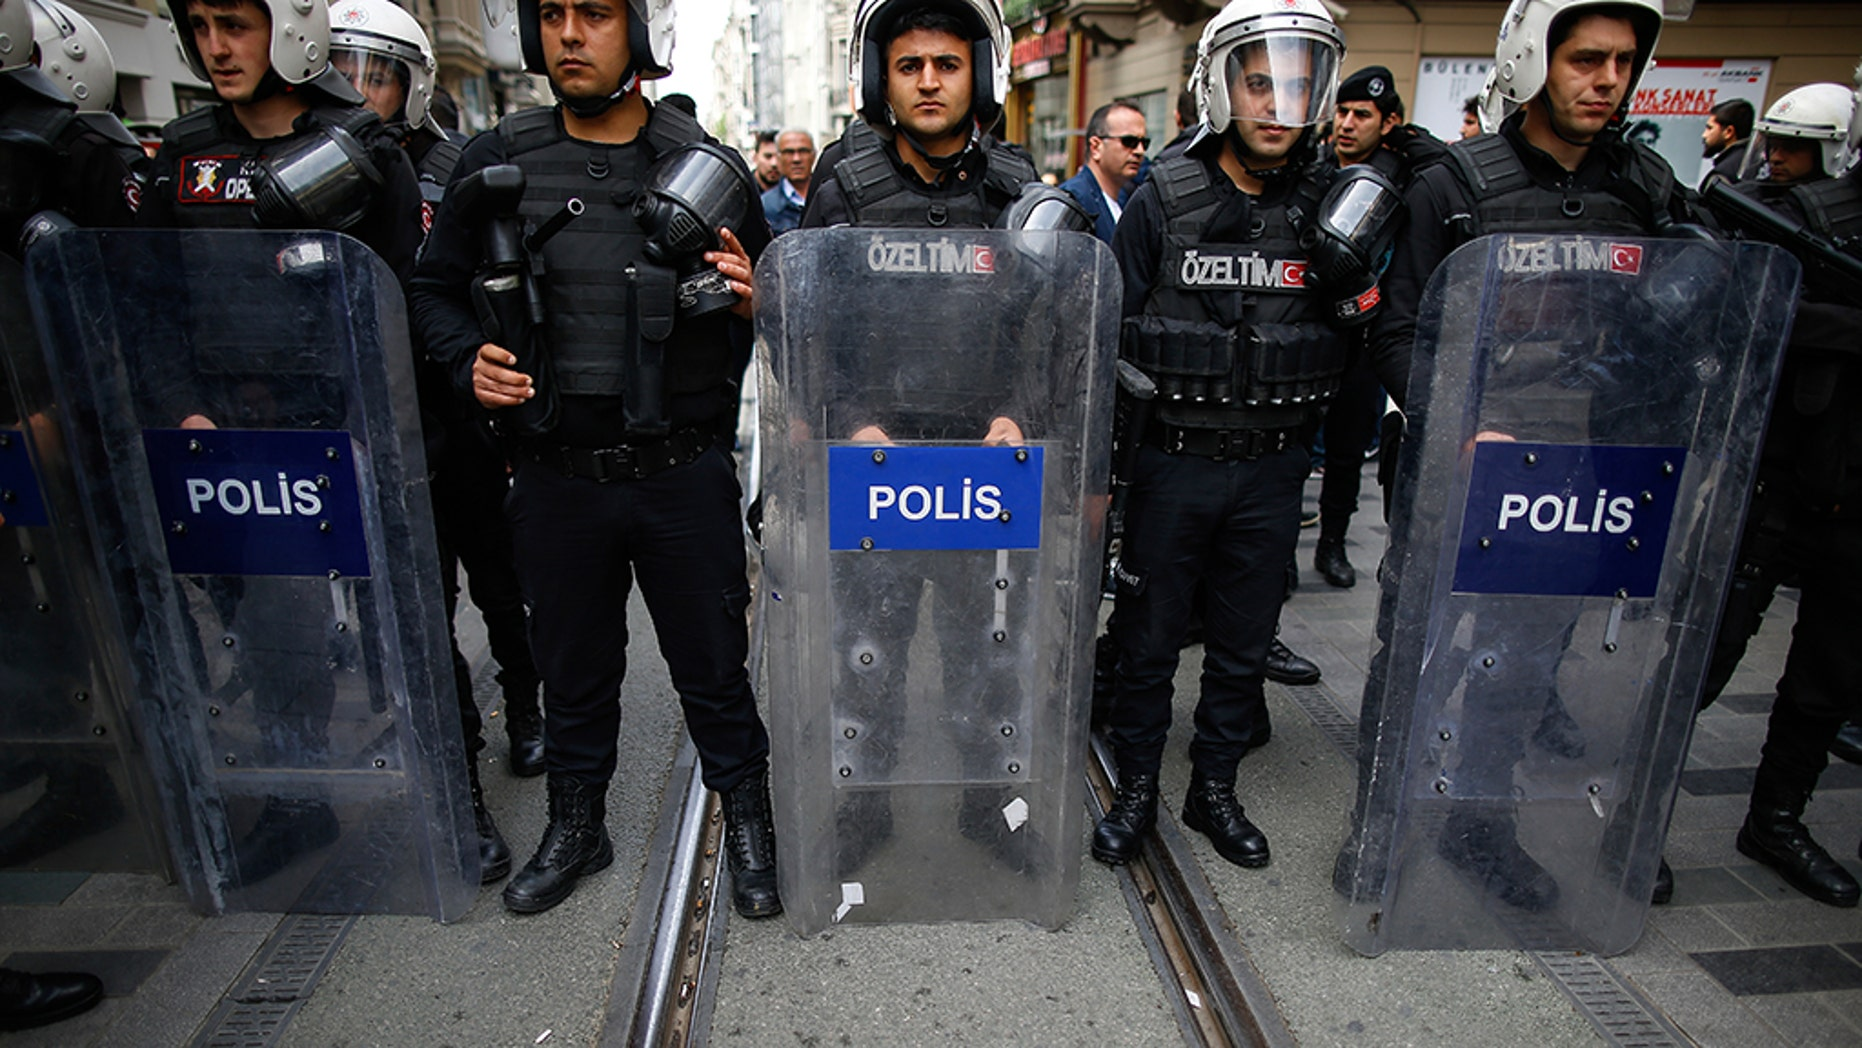 Turkey's police officers looking on as supporters of Turkey's main opposition Republican People's Party, CHP, gather to protest near central Istanbul's Taksim Square.